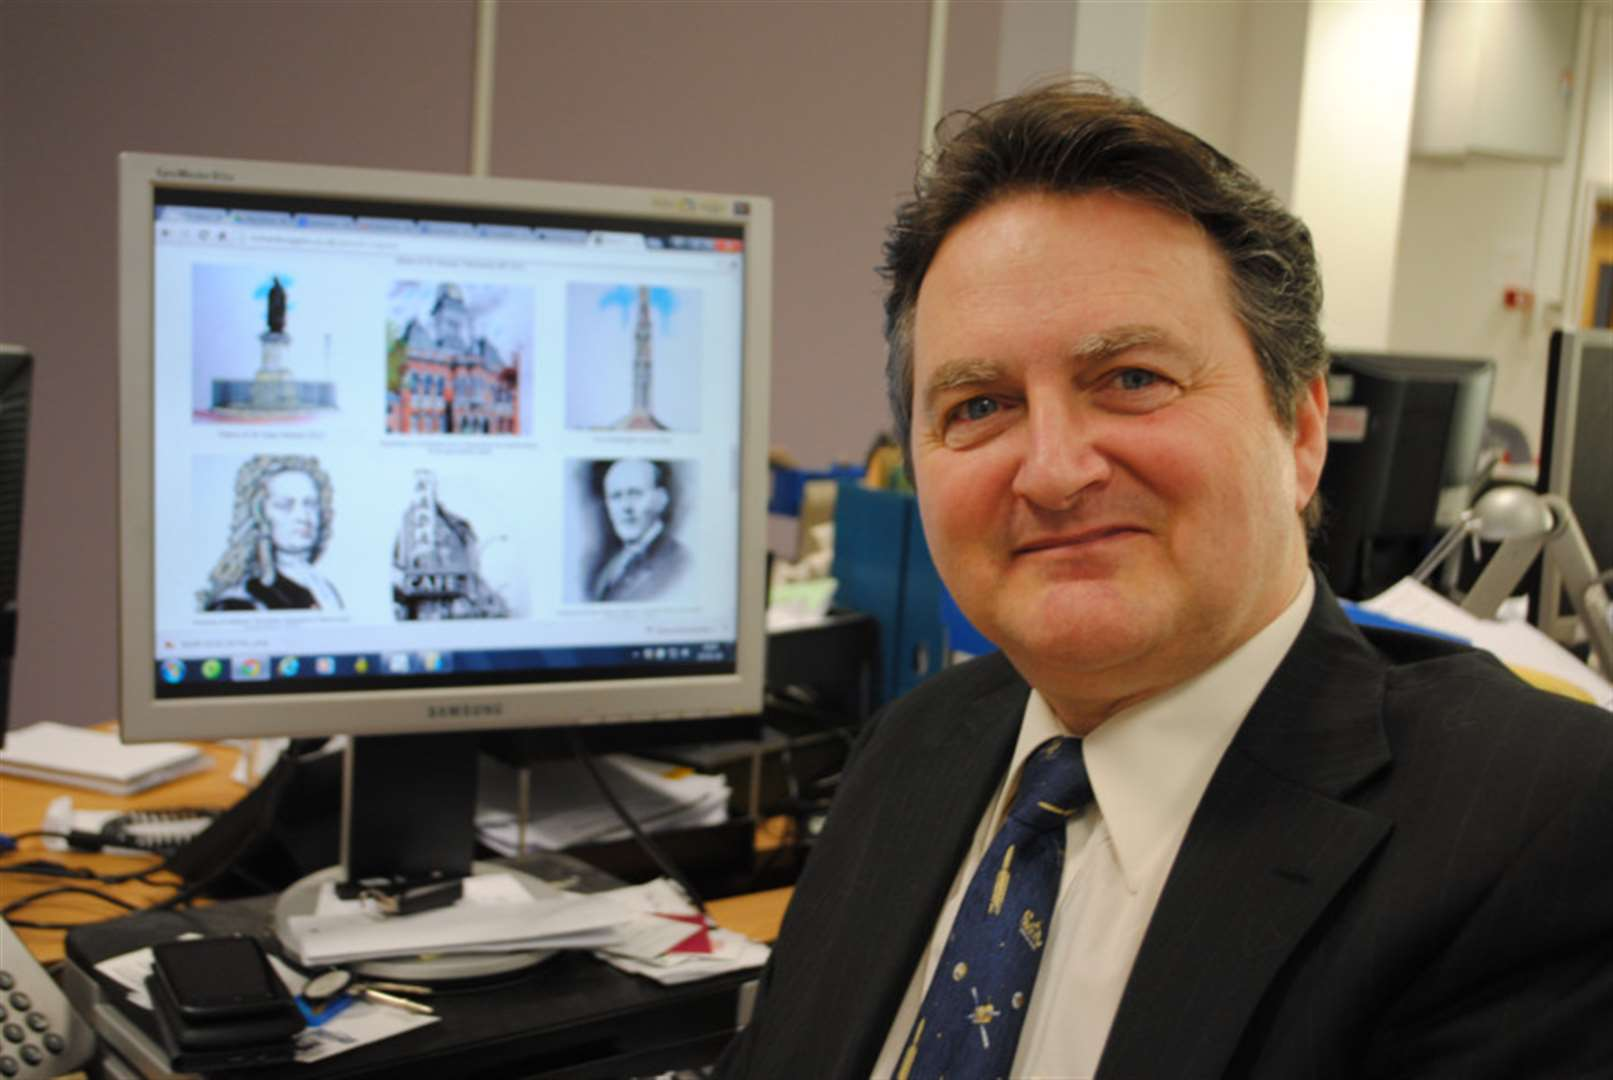 Grantham artist and designer Richard draws on 50 years of experience for new website